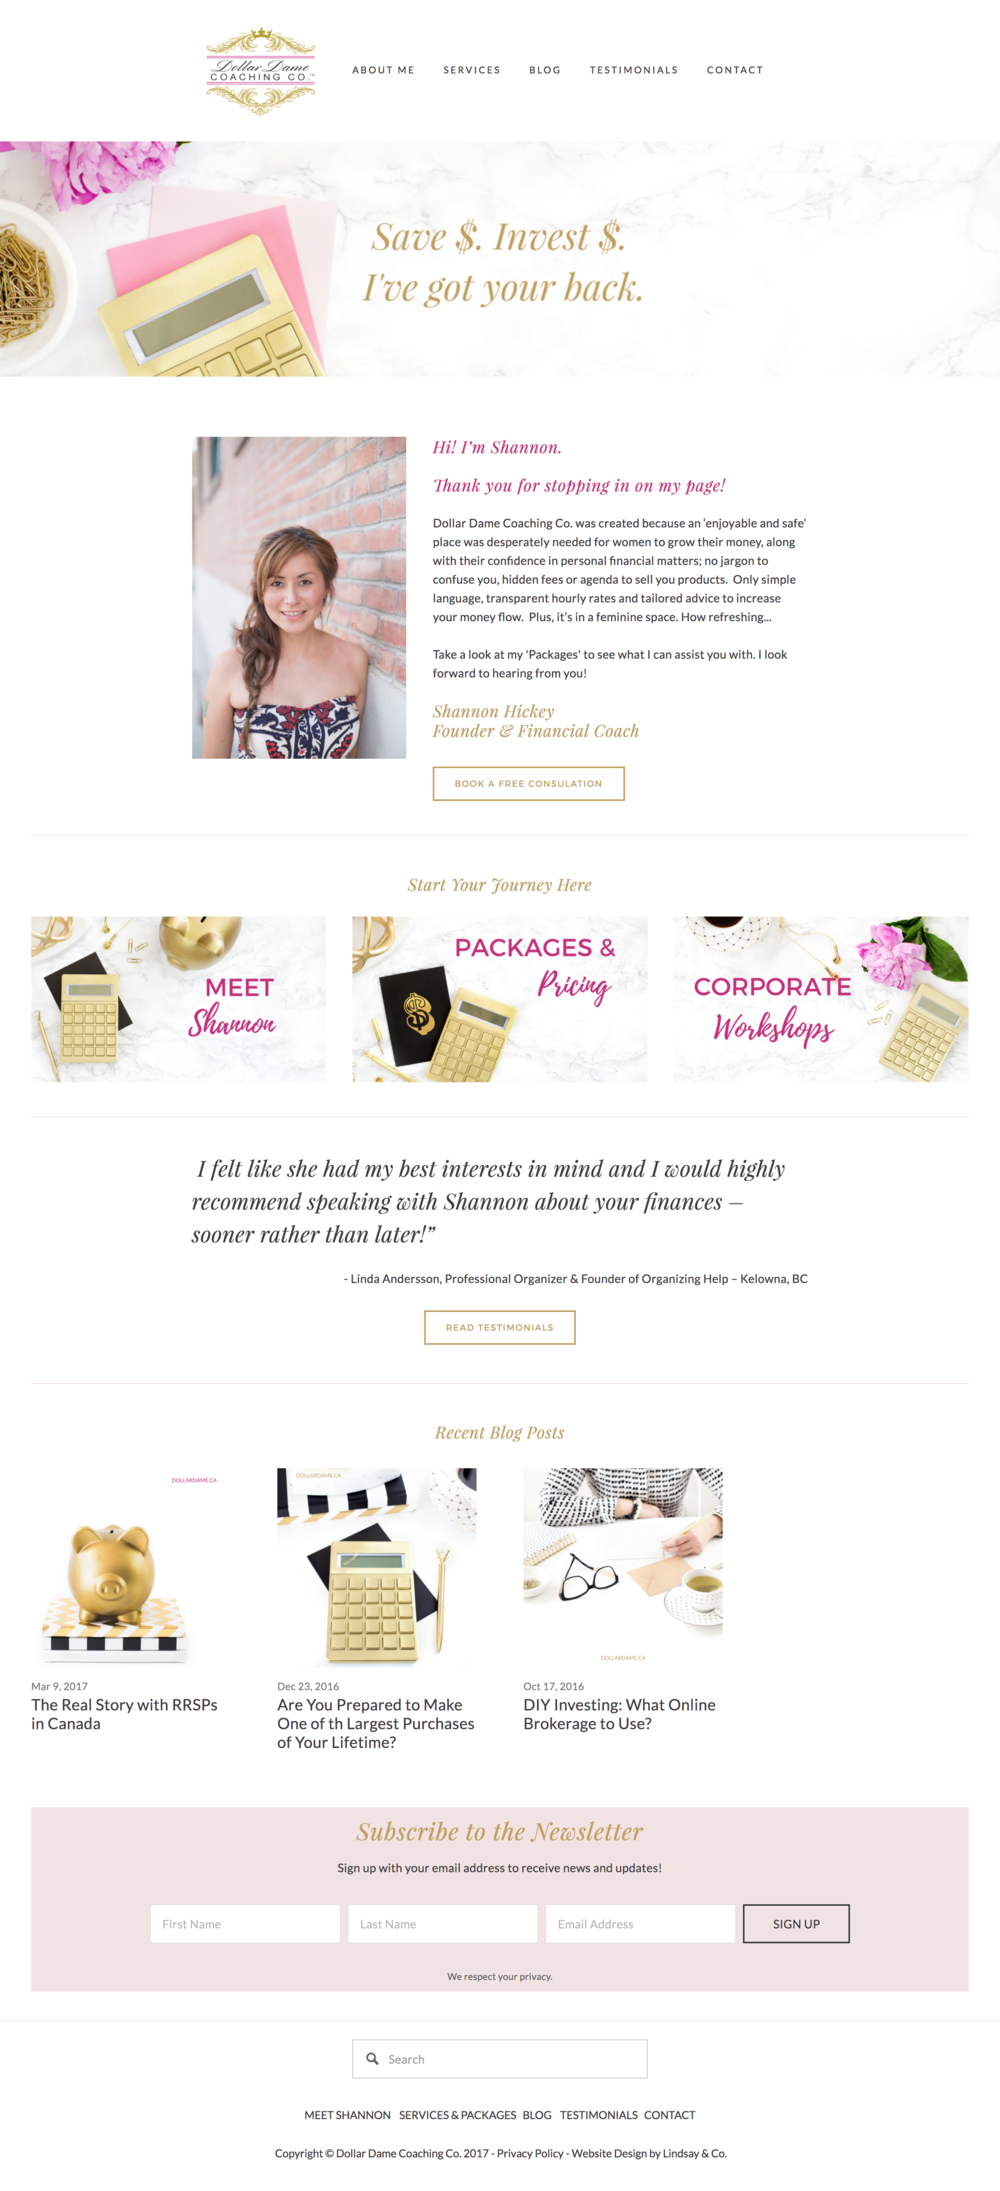 Dollar Dame Website Design by Lindsay & Co. Home